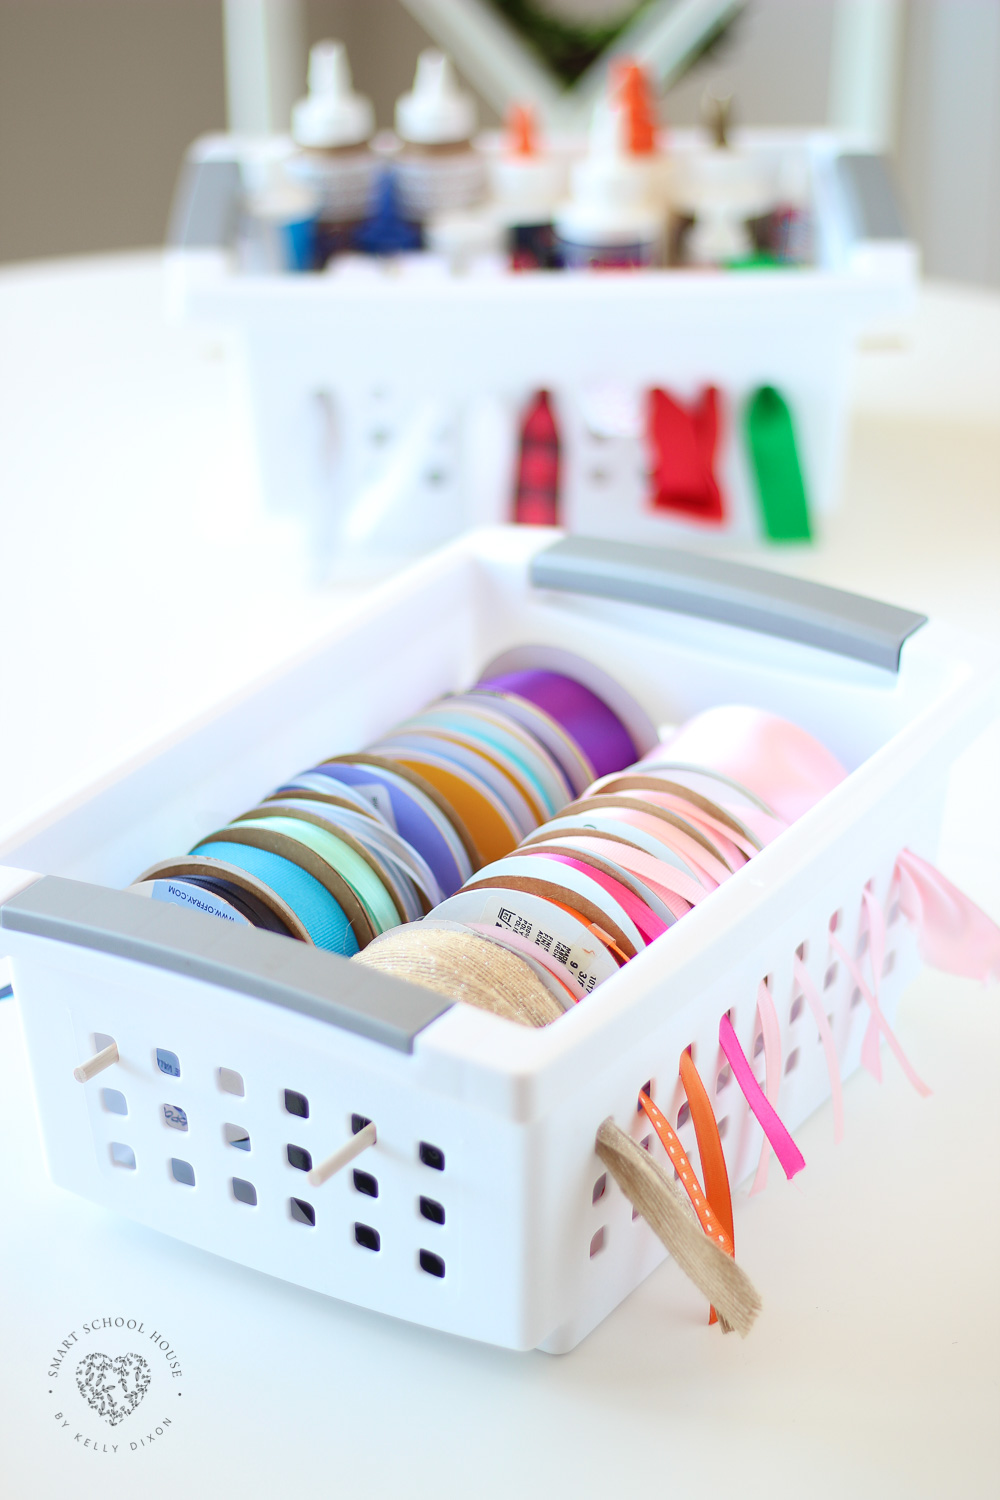 Tidy Tips and Organization - ribbon storage solution! Use plastic bins and small wooden dowels to store ribbon spools. No more ribbon messes! Everything stays neat and tidy. More must-see tips here. #CraftRoomOrganization #TidyTips #OrganizingTips